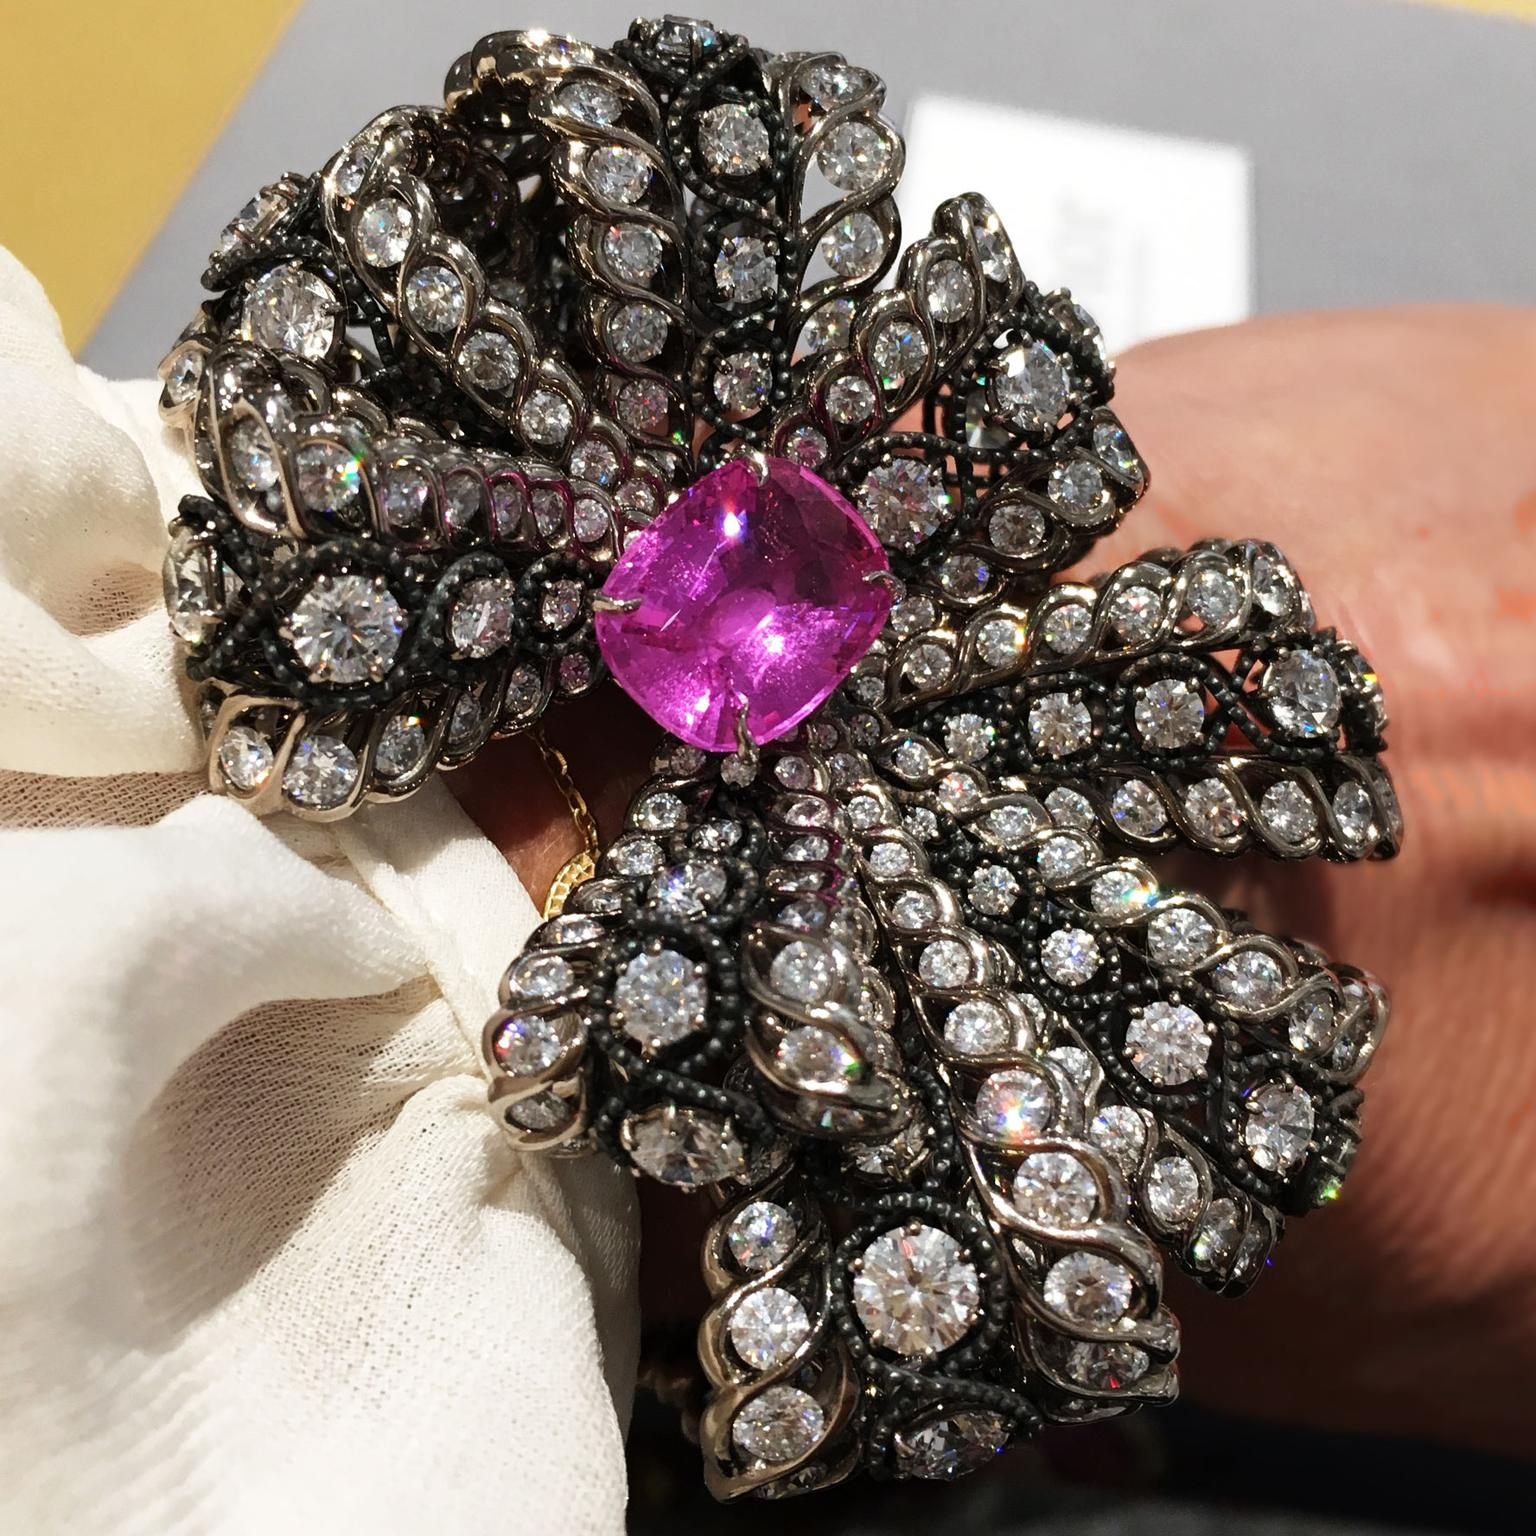 Dior a Versailles Salon de Vénus bracelet in white gold, scorched silver, diamonds and pink sapphire